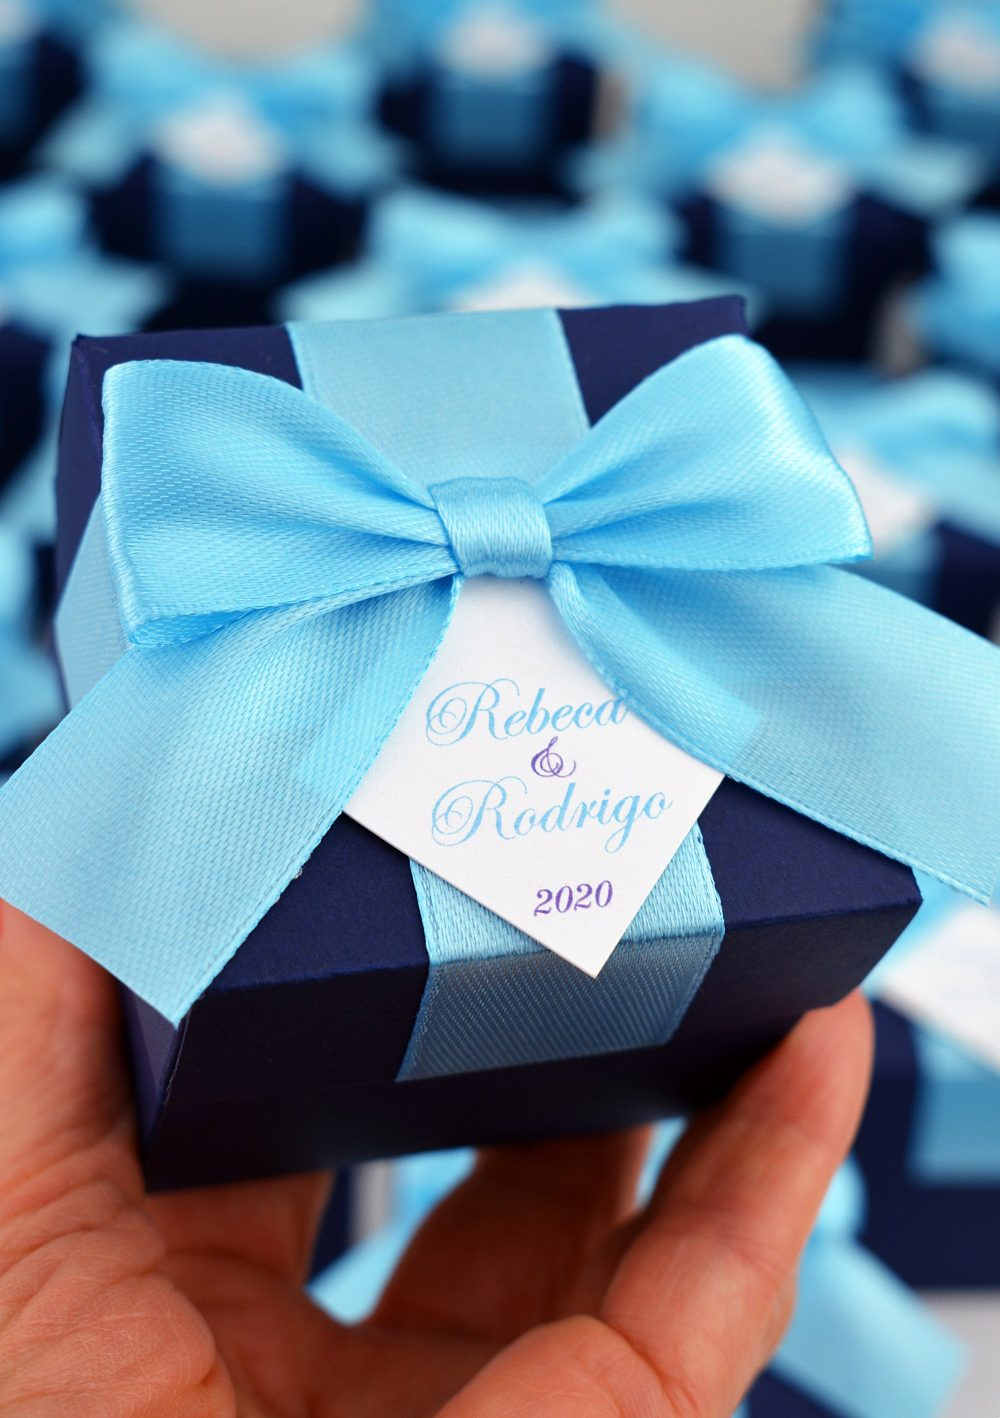 Navy Blue Wedding Favor Boxes With Satin Ribbon Bow & Your Names, Elegant Personalized Bonbonniere, Box For Gifts Guests